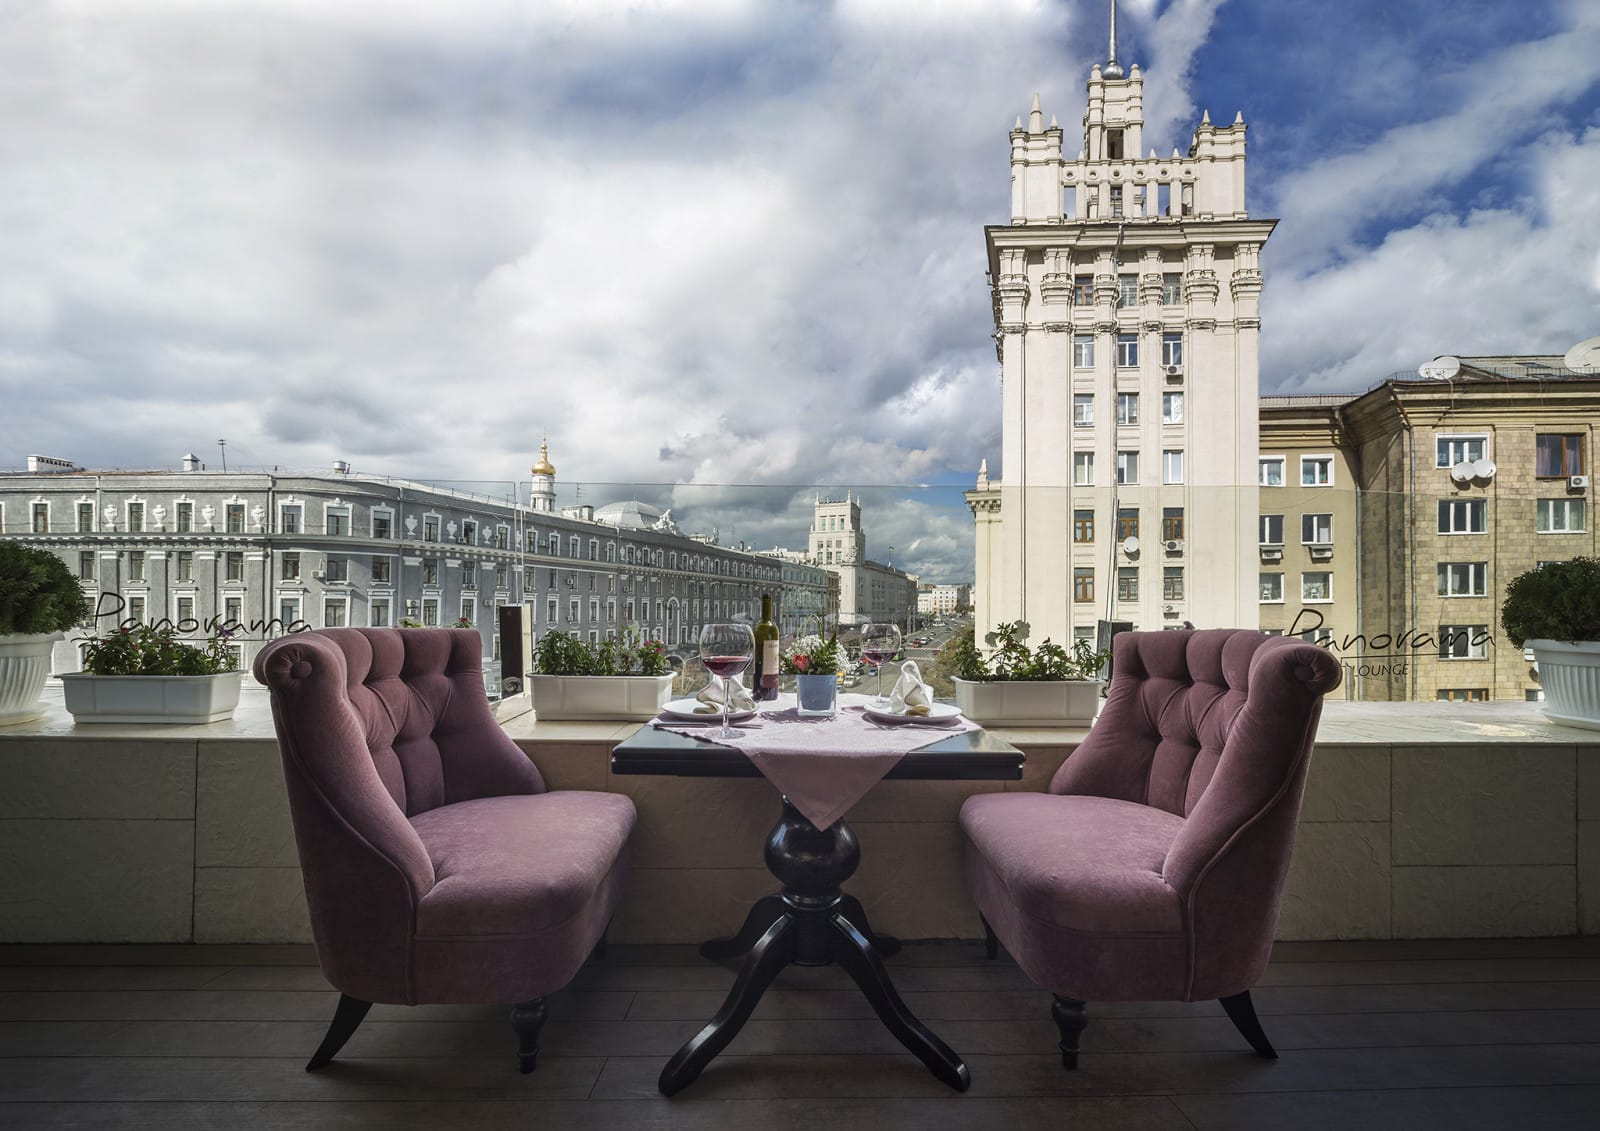 Ресторан Panorama Lounge в историческом центре Харькова, Украина, HQ architecture, HQarch, HQ arch, high quality architecture